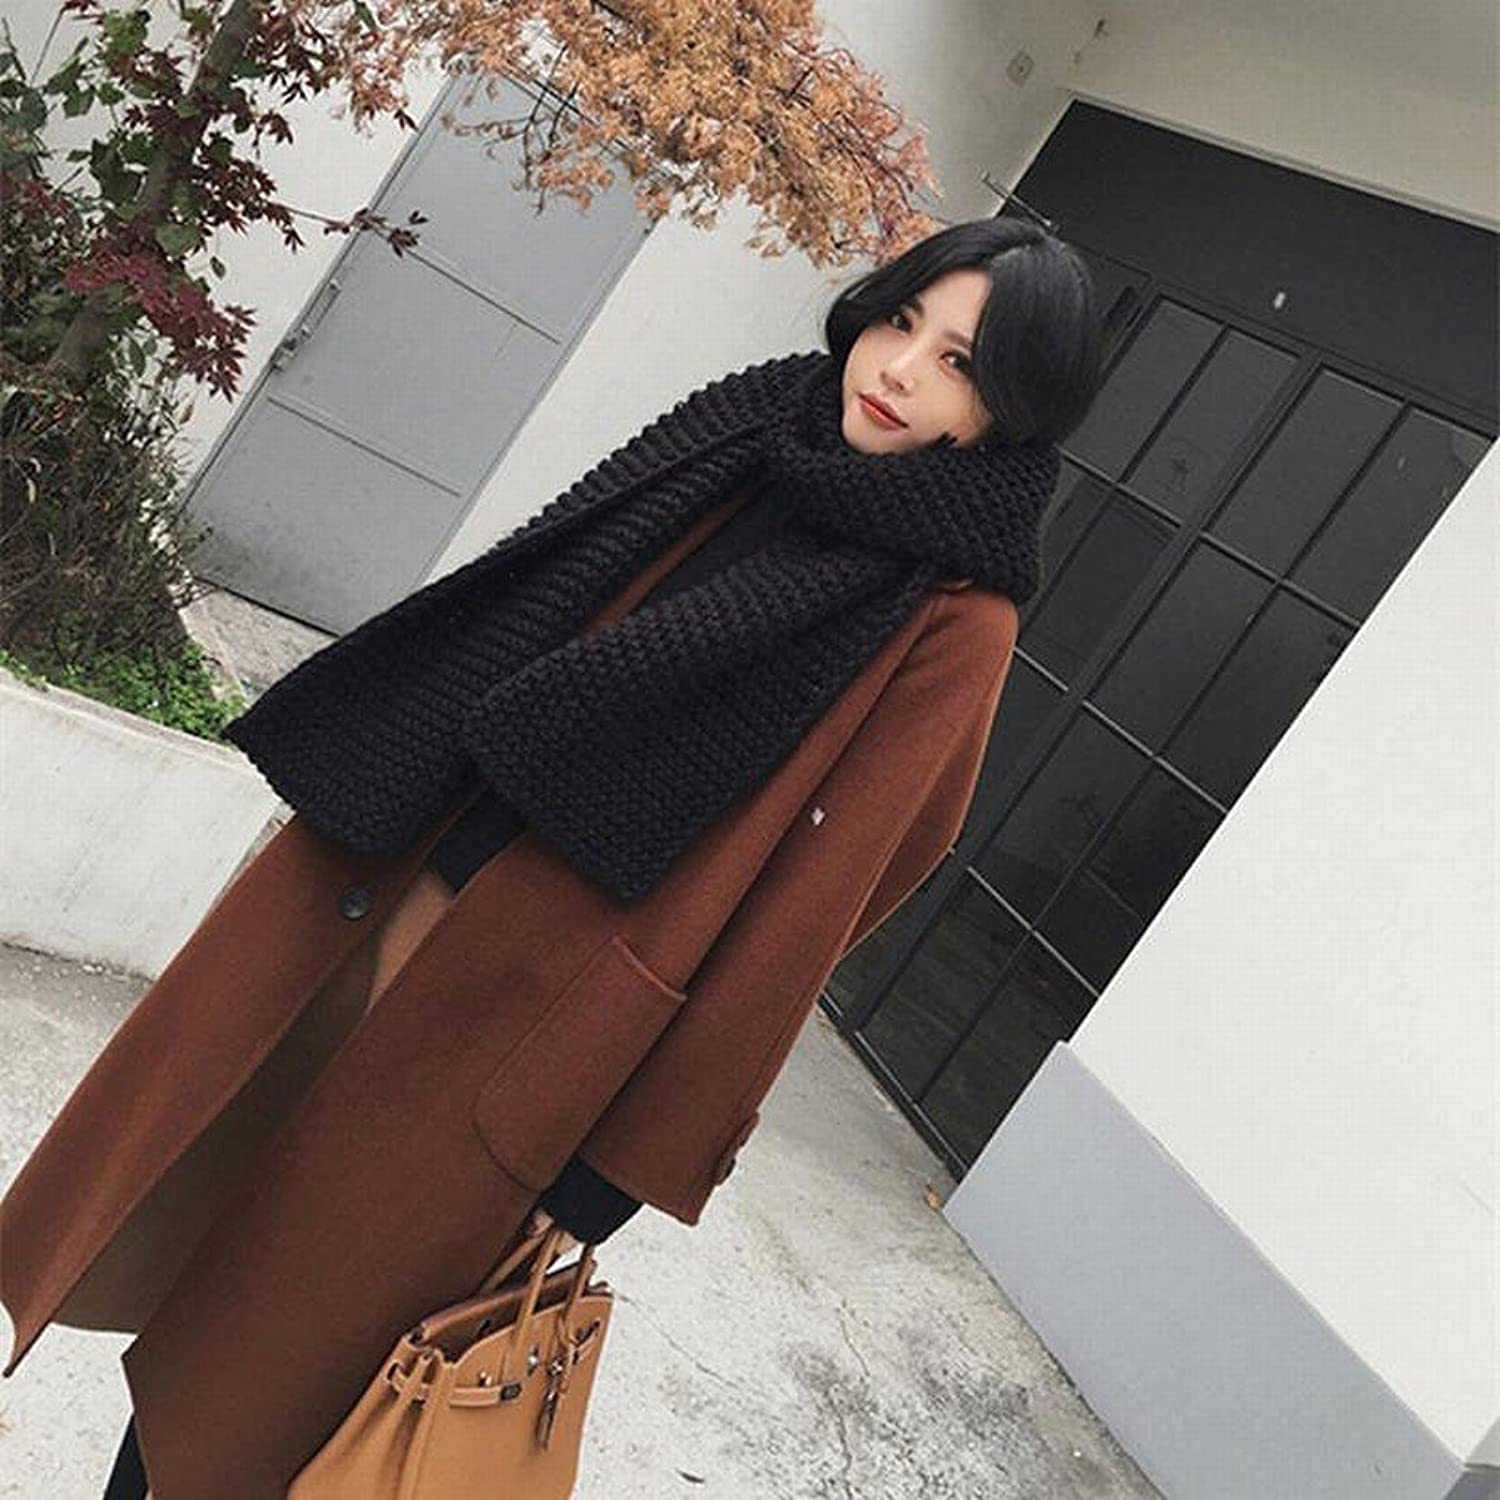 DEED Women's CoatFashion Woolen Coat in The Long Paragraph Loose Loose Knee Jacket Winter Clothes